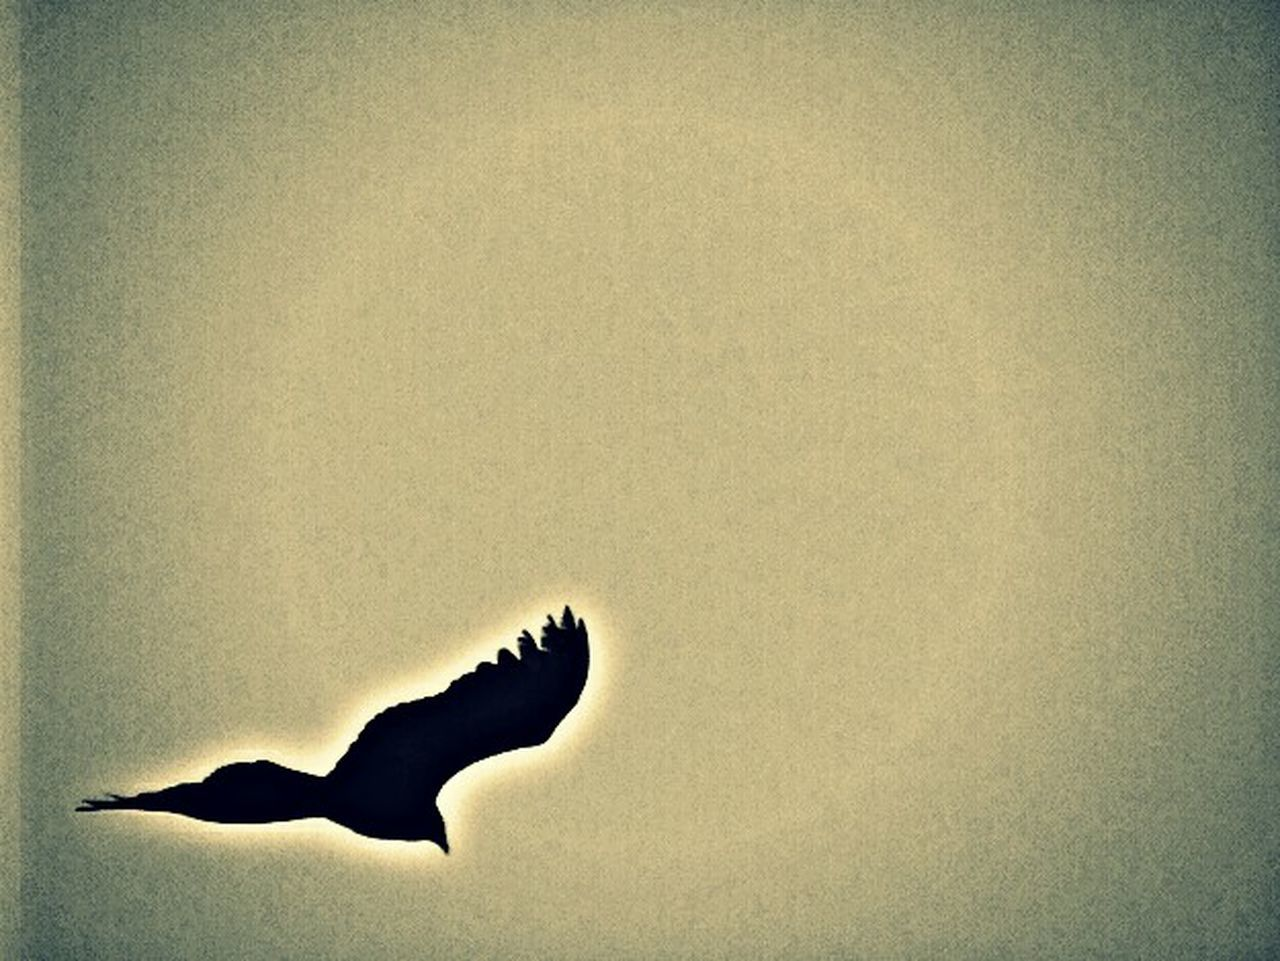 copy space, one animal, animal themes, silhouette, no people, animals in the wild, day, outdoors, nature, bird, close-up